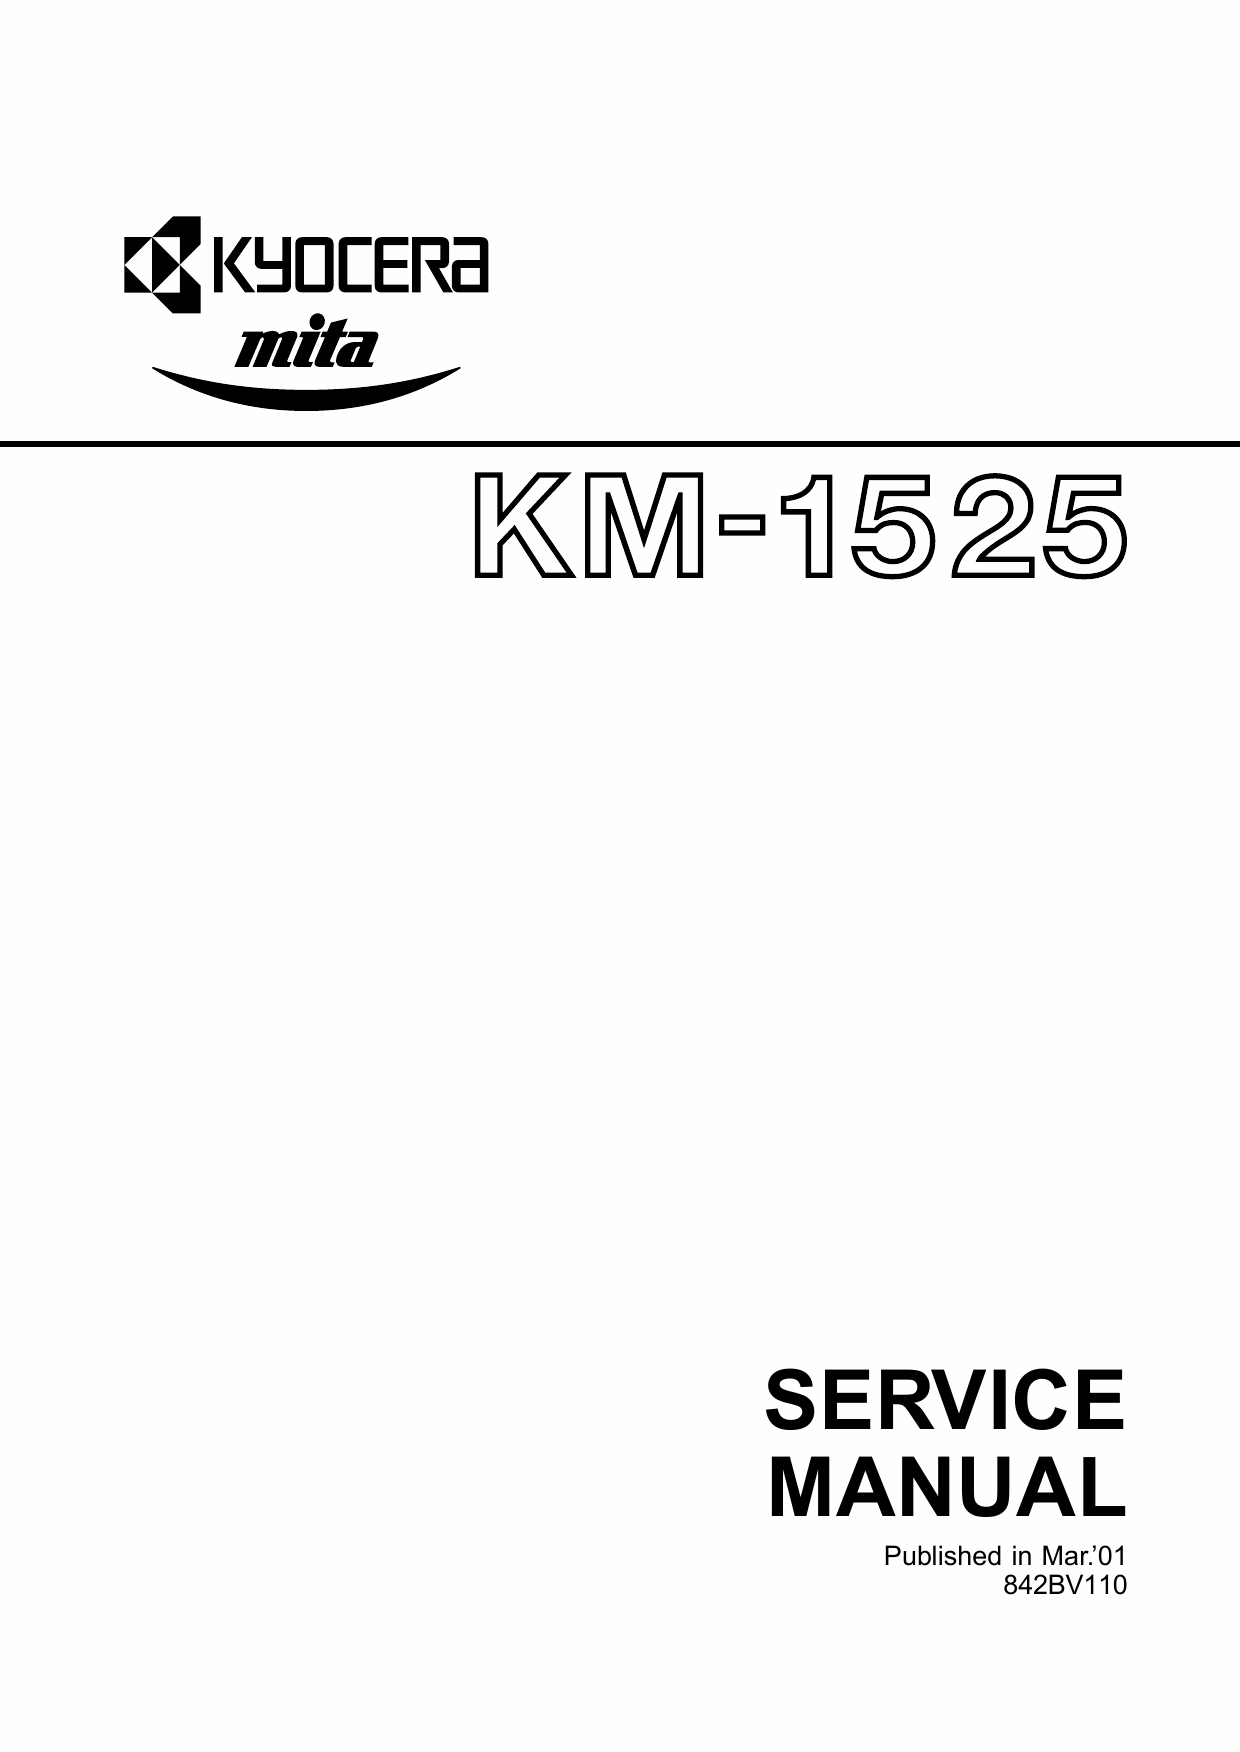 KYOCERA Copier KM-1525 Parts and Service Manual-1